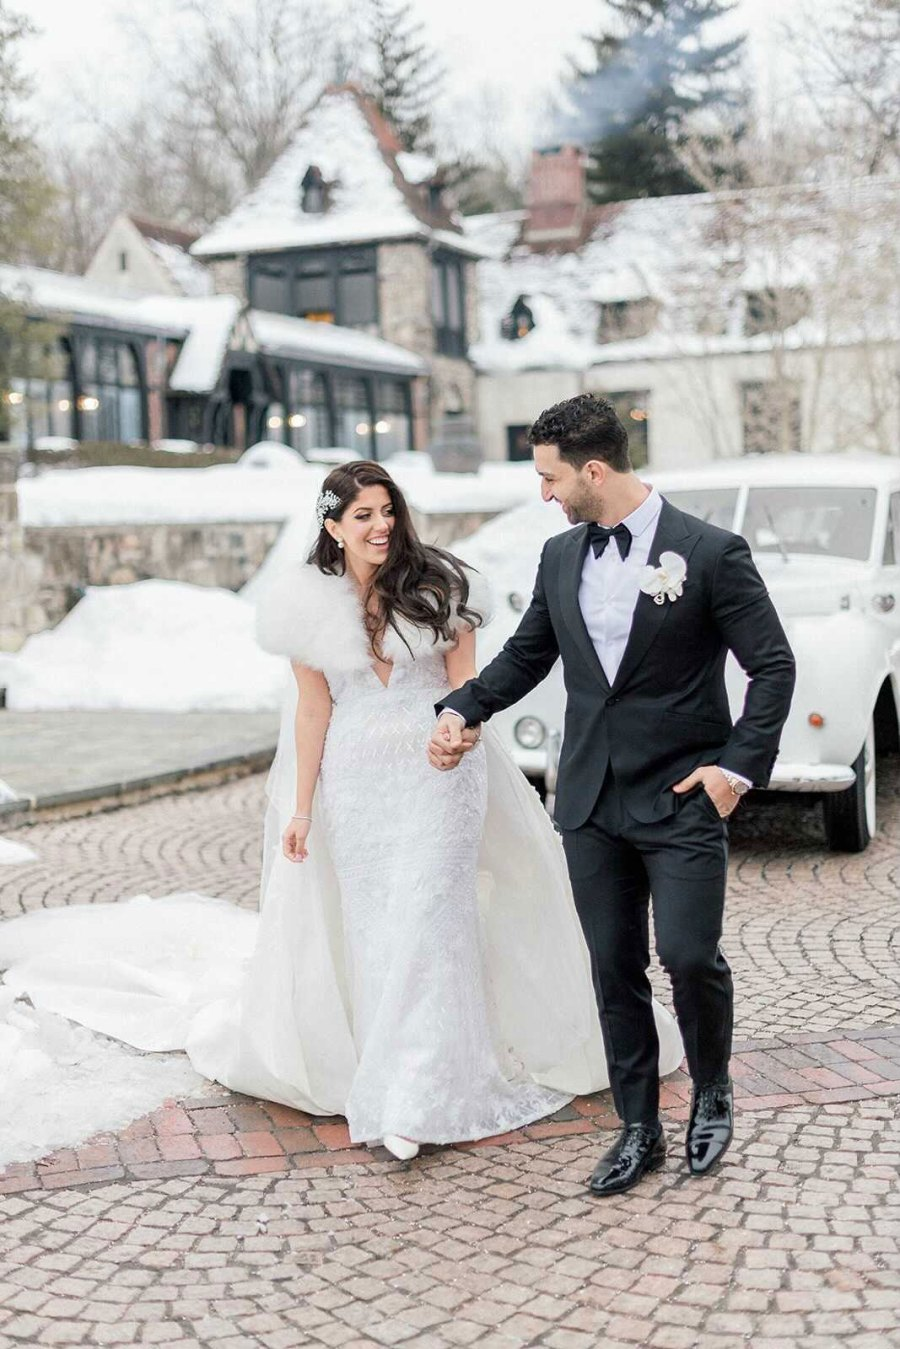 Victoria Wakile and Teddy Kosmidis Real Housewives of New Jersey Stars Who Got Married in 2021 Wedding Photo